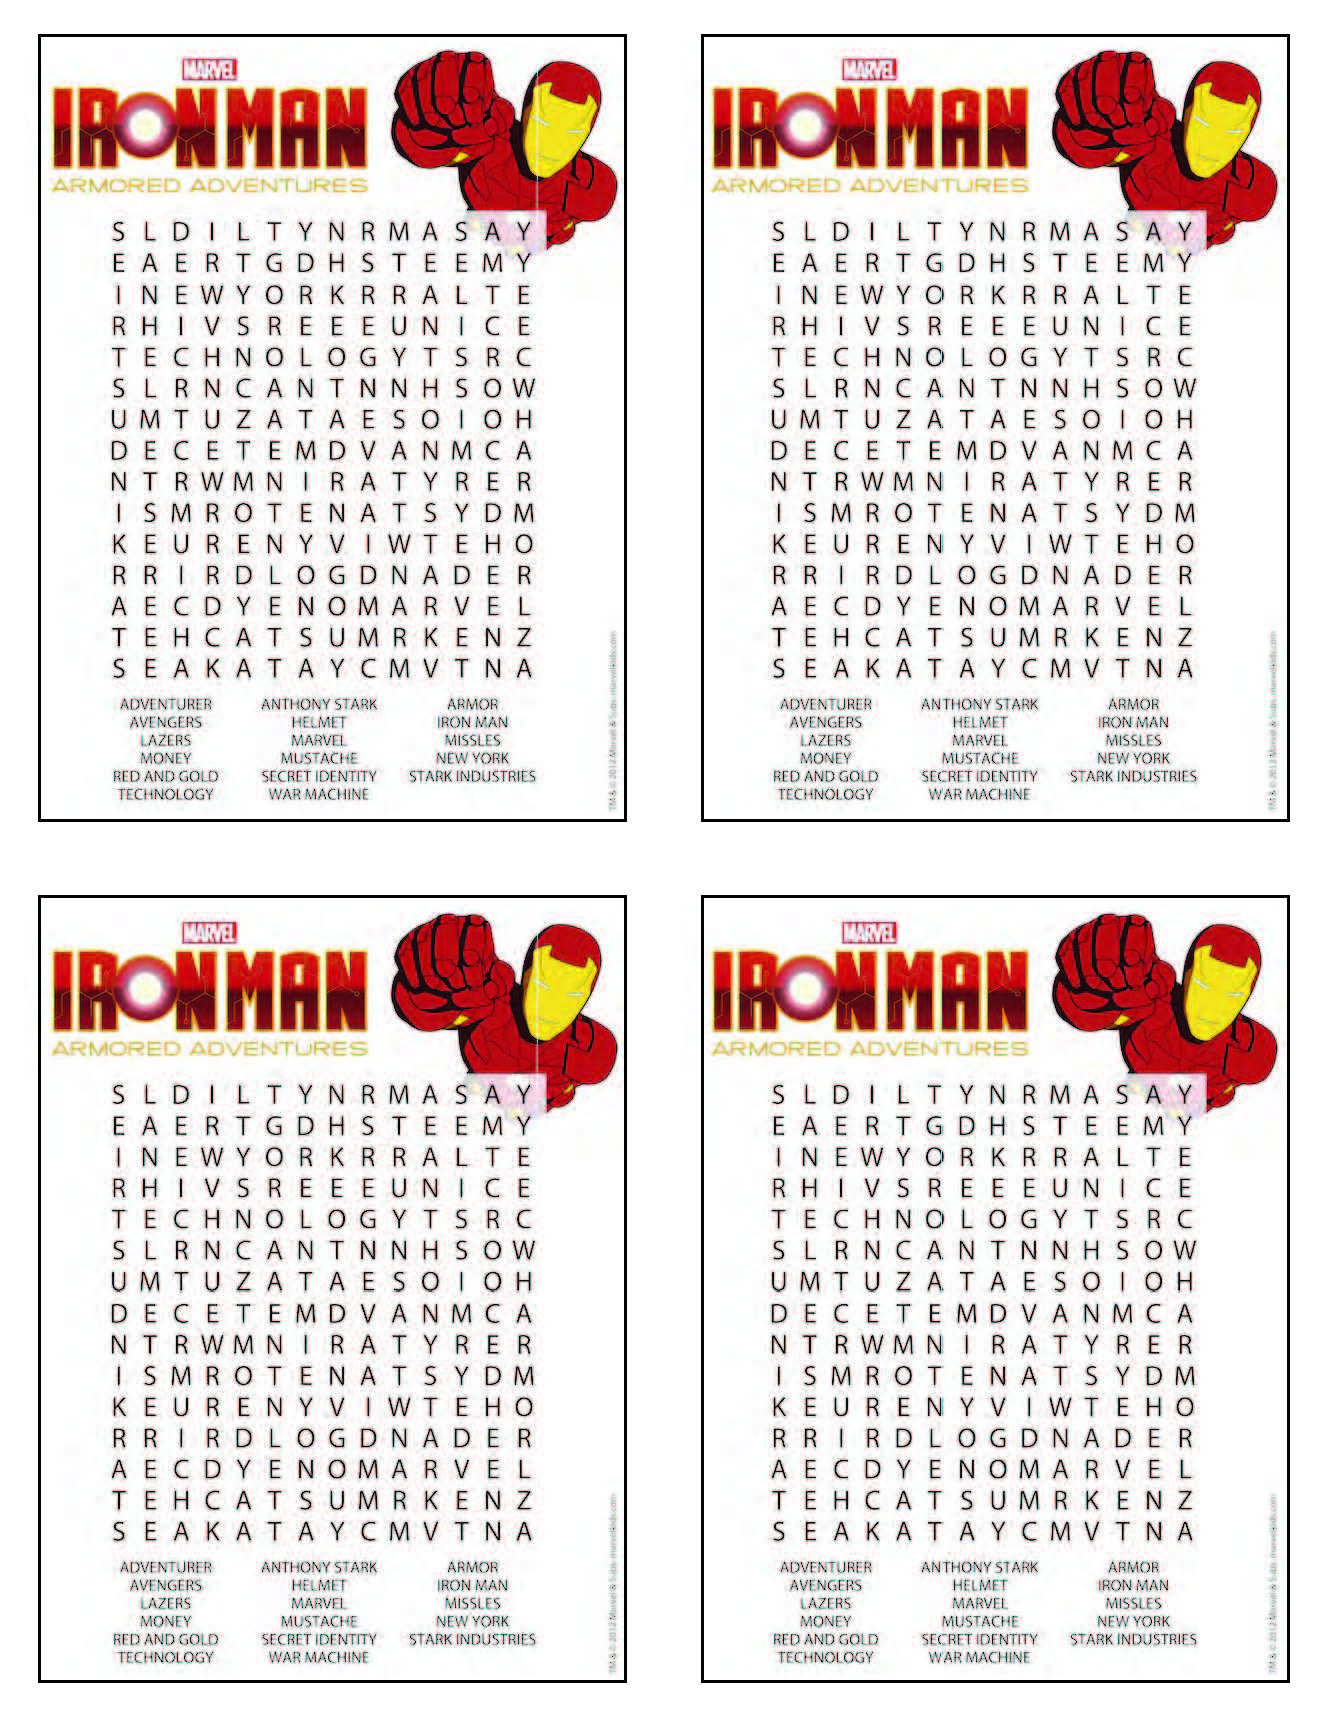 Iron Man Word Search (From Free Printable) - Small Size For